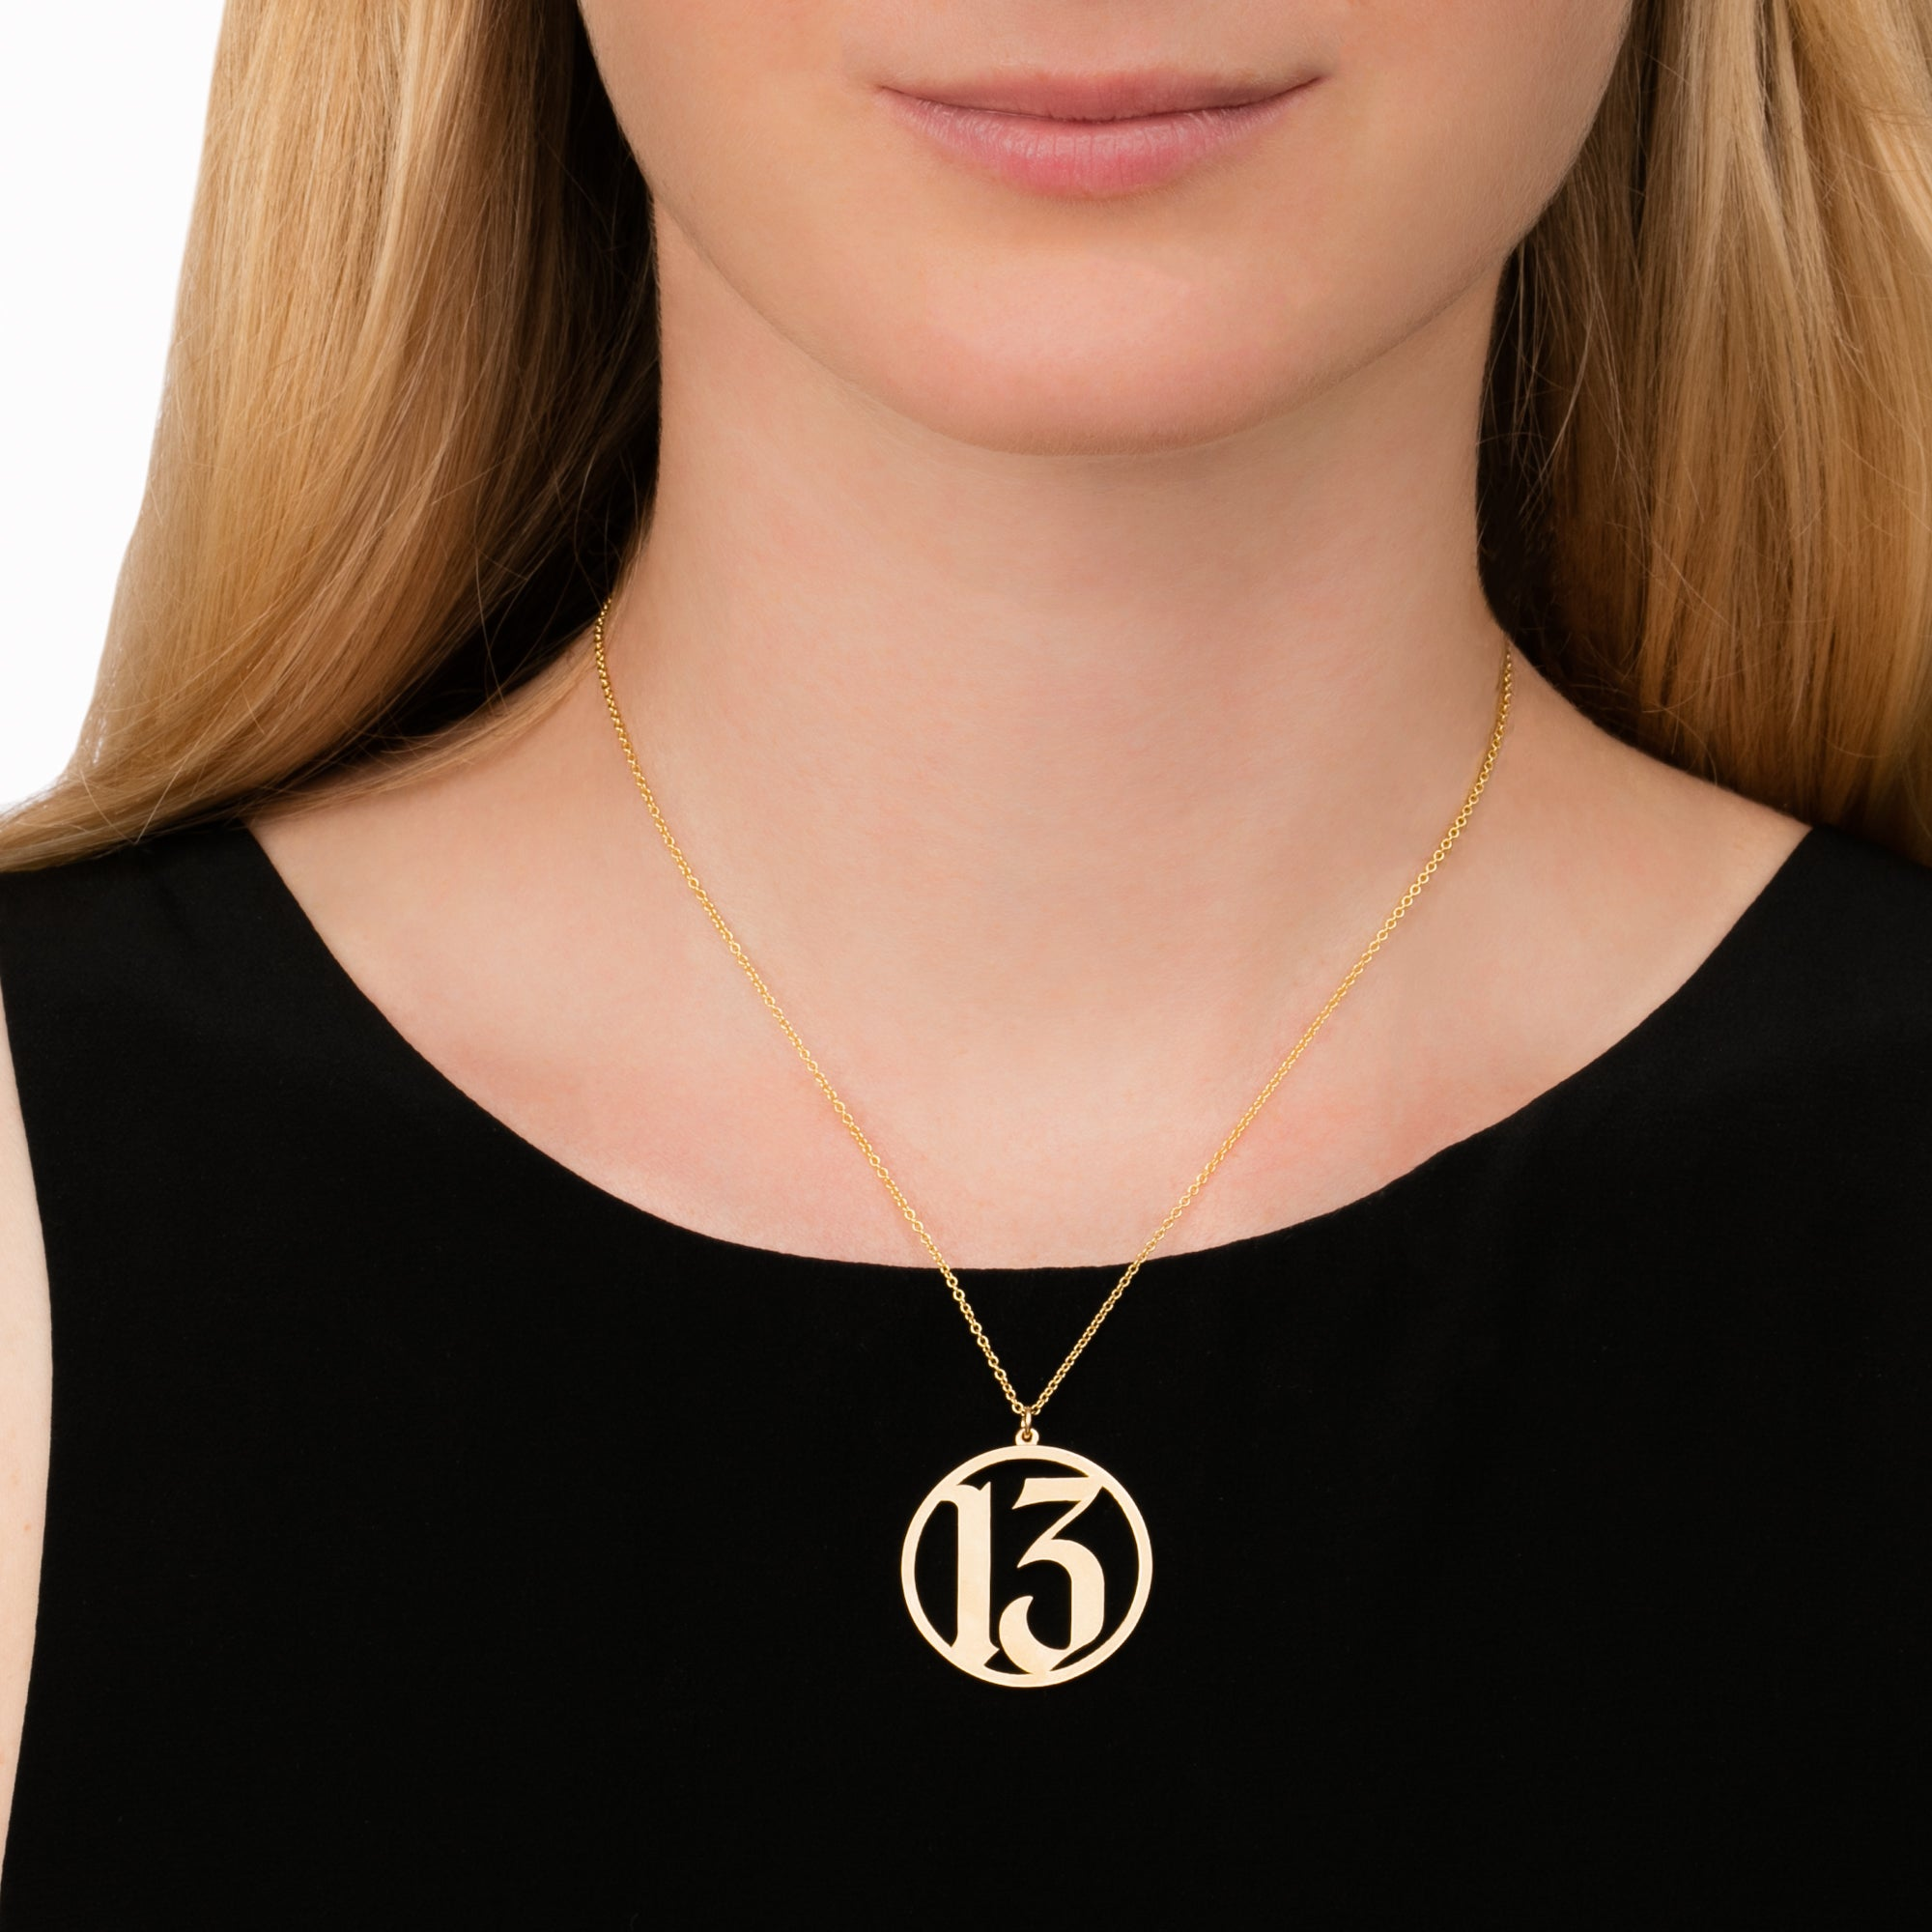 Established Jewelry 13 Pendant Necklace - Necklaces - Broken English Jewelry